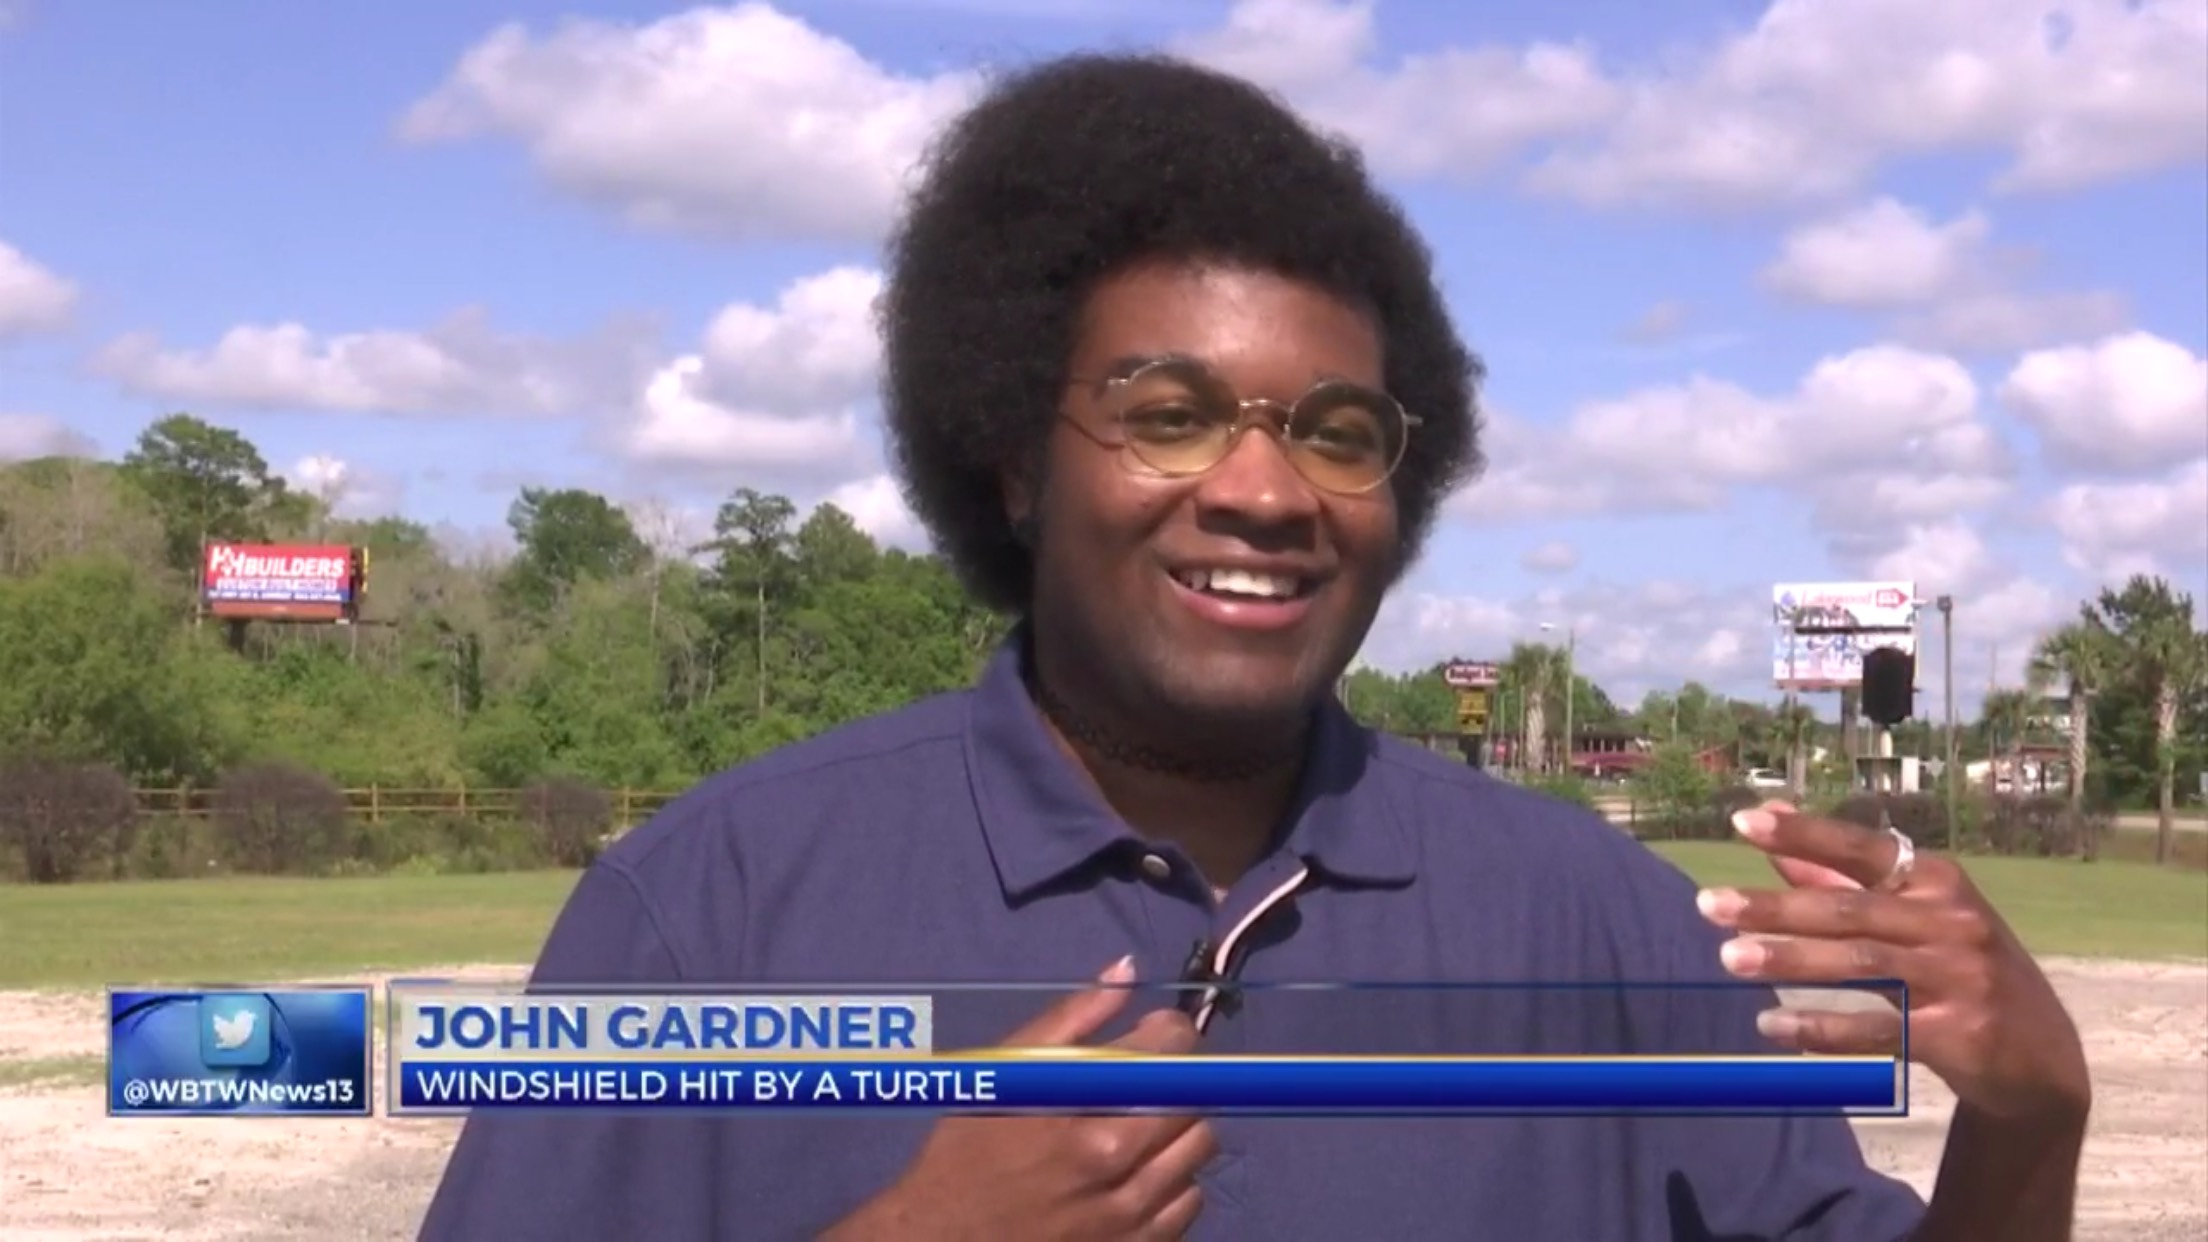 John Gardner: Windshield Hit By A Turtle